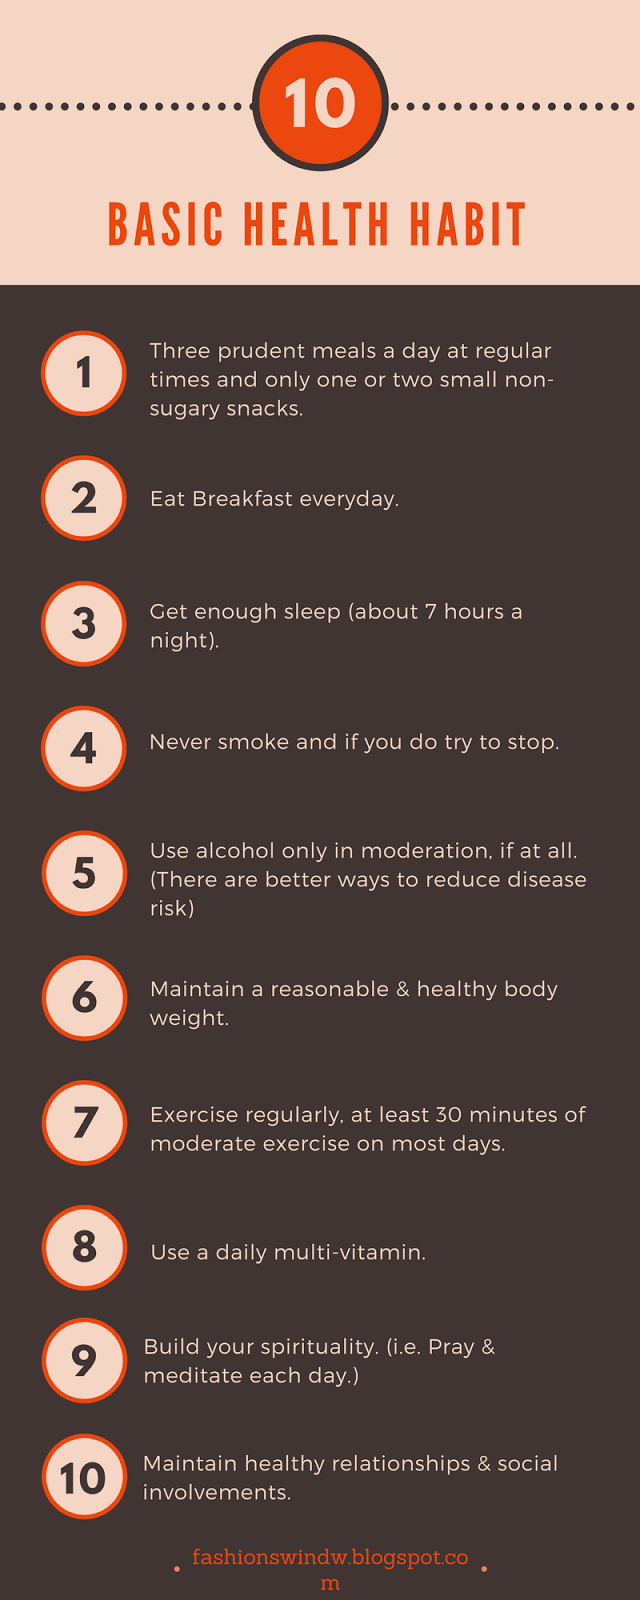 10 Basic Health Habits